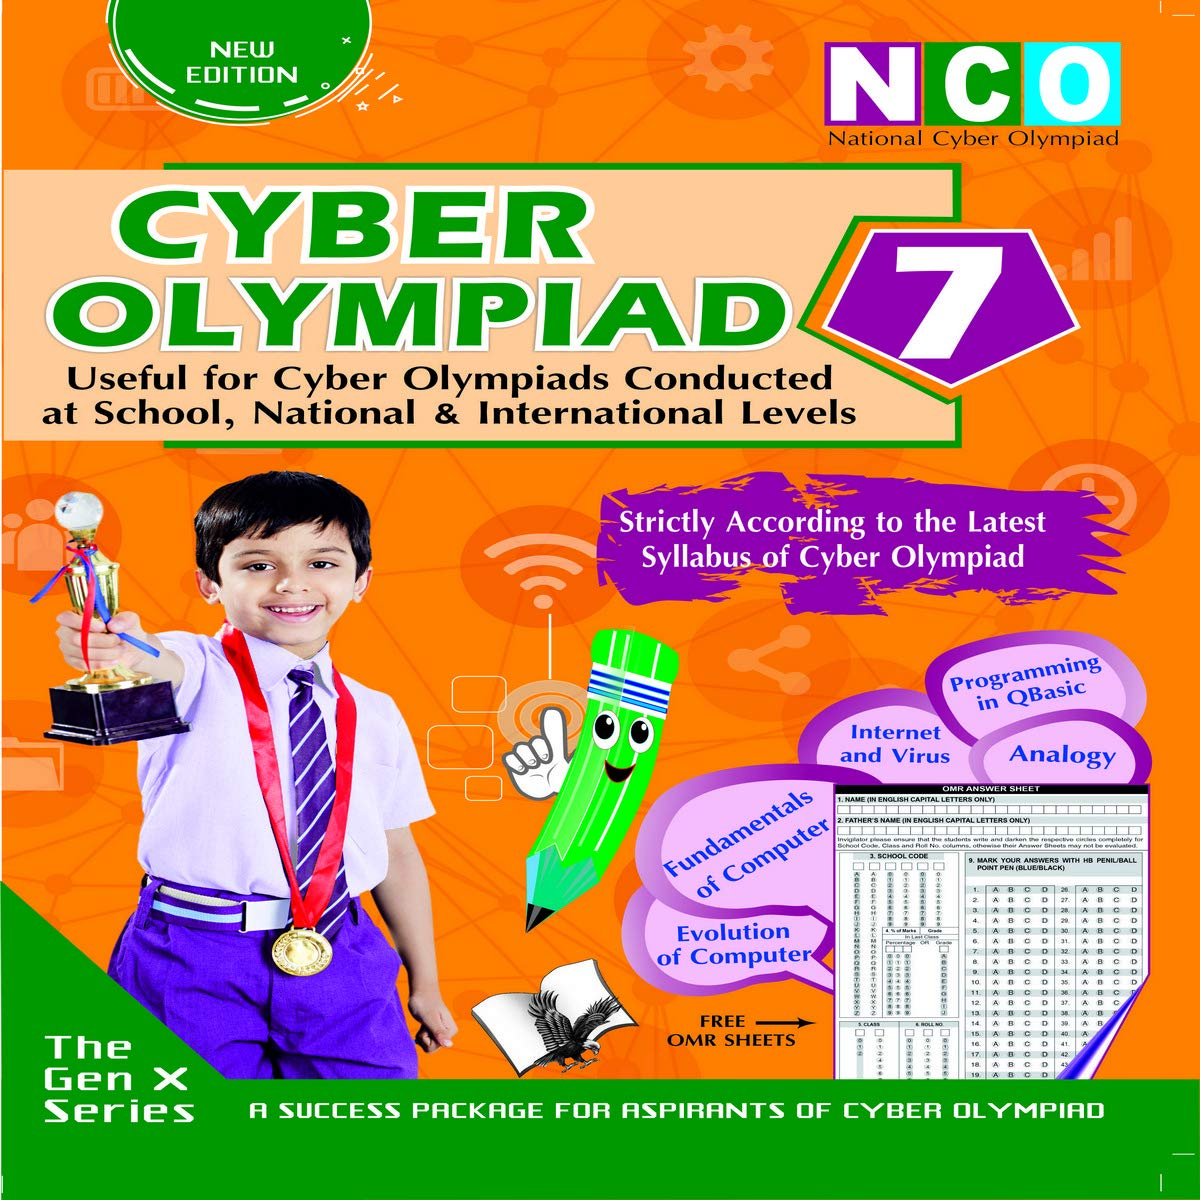 Cyber Olympiad 7 (Useful for Cyber Olympiads Conducted at School, National & International Levels)